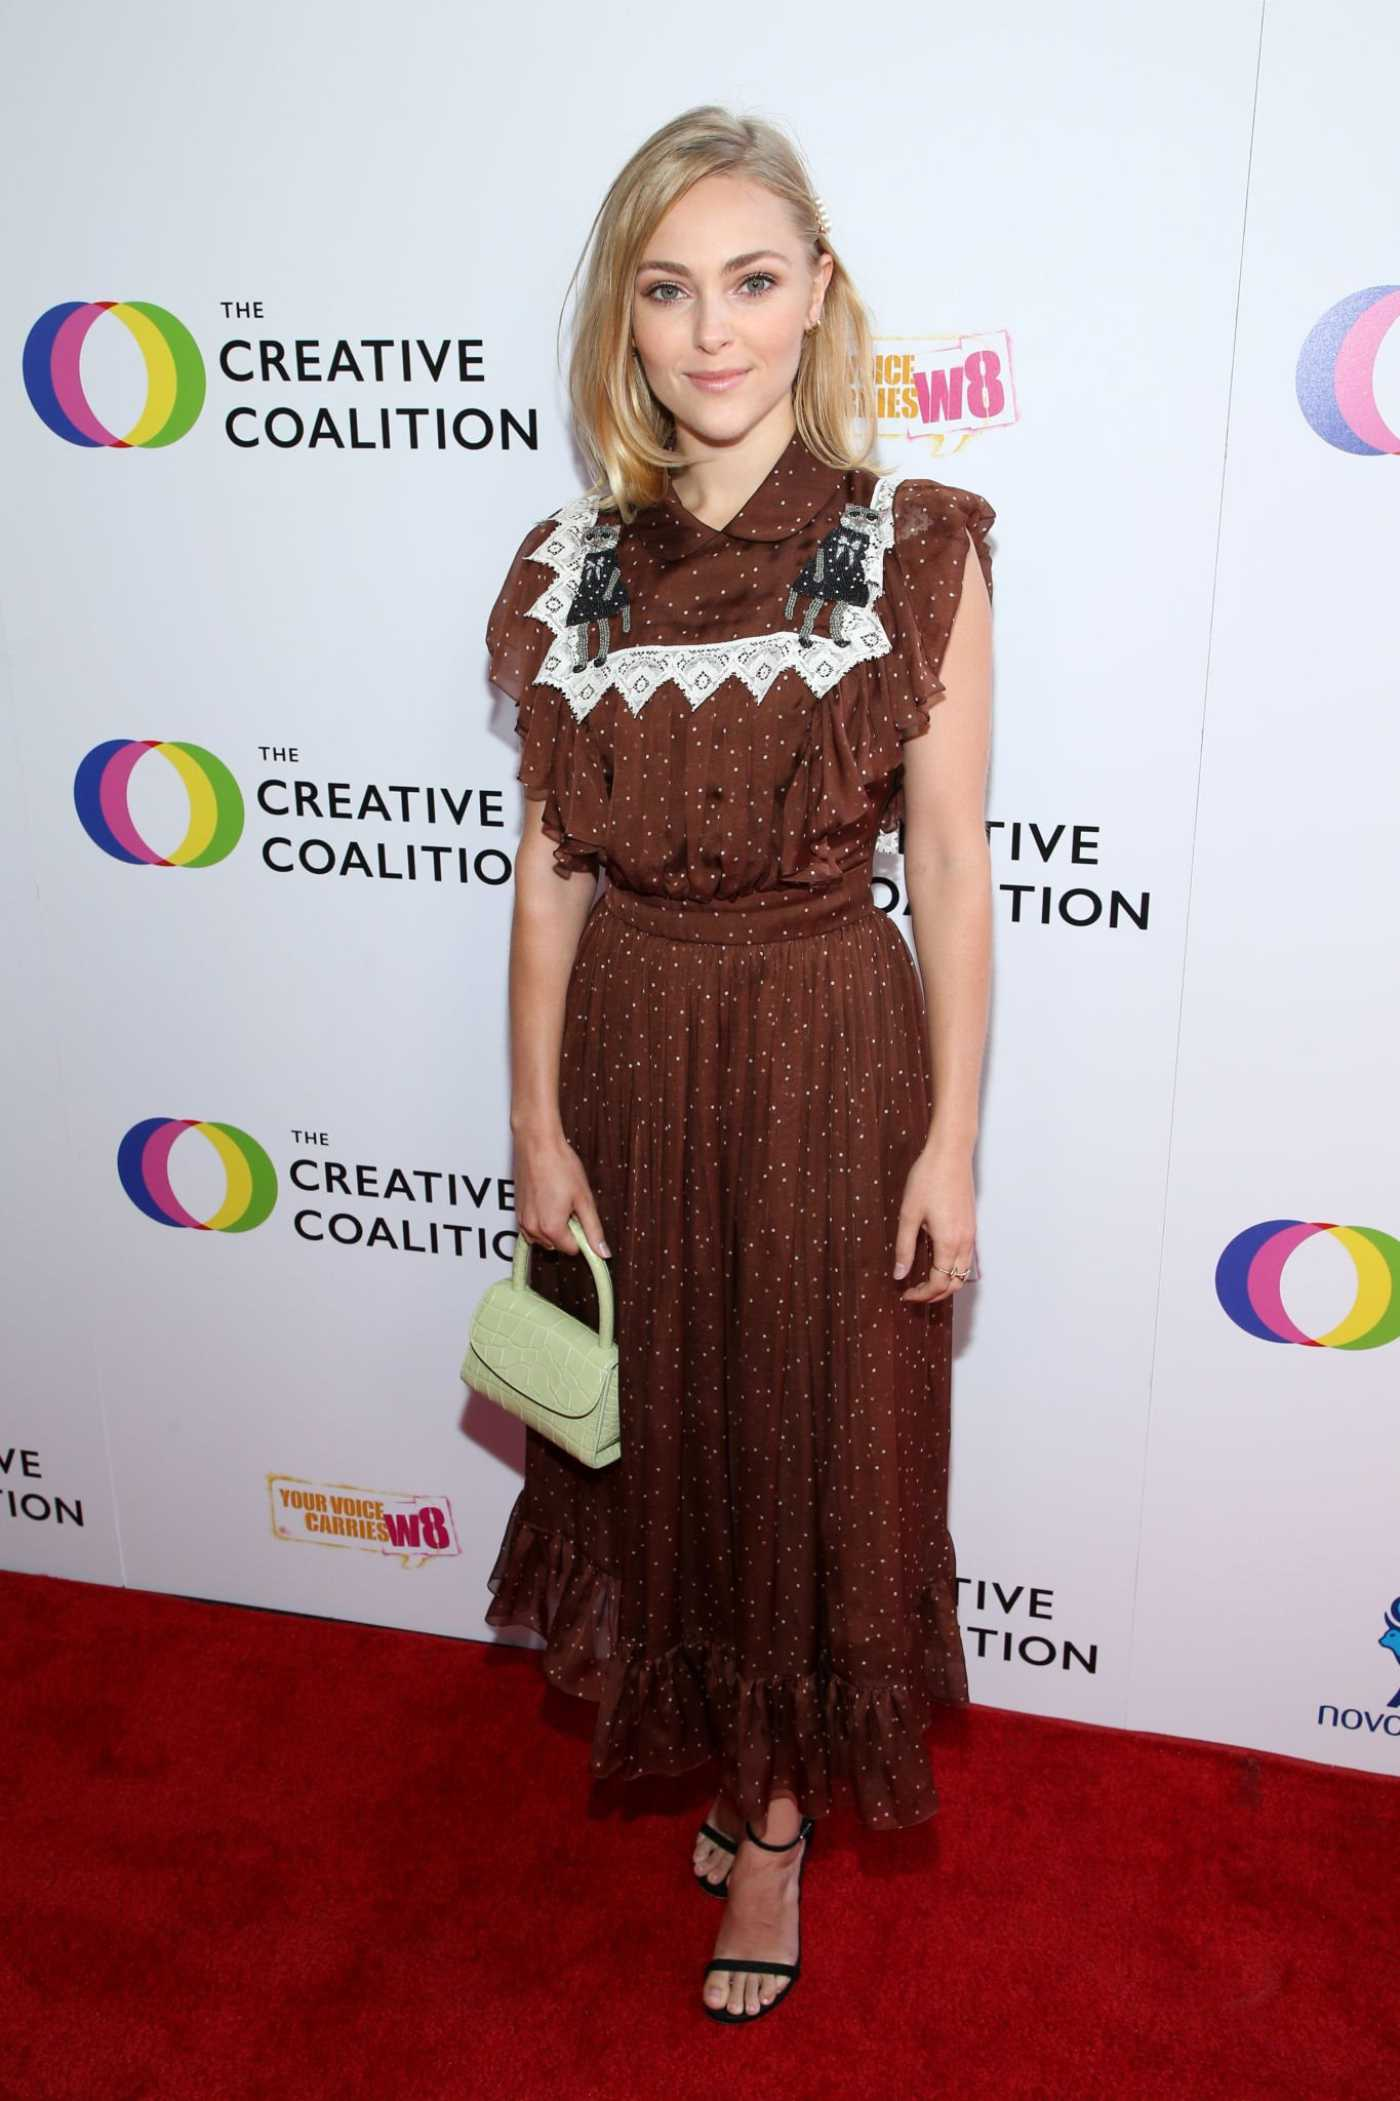 Annasophia Robb Attends the Creative Coalition's Annual Television Humanitarian Awards Gala in Beverly Hills 09/21/2019